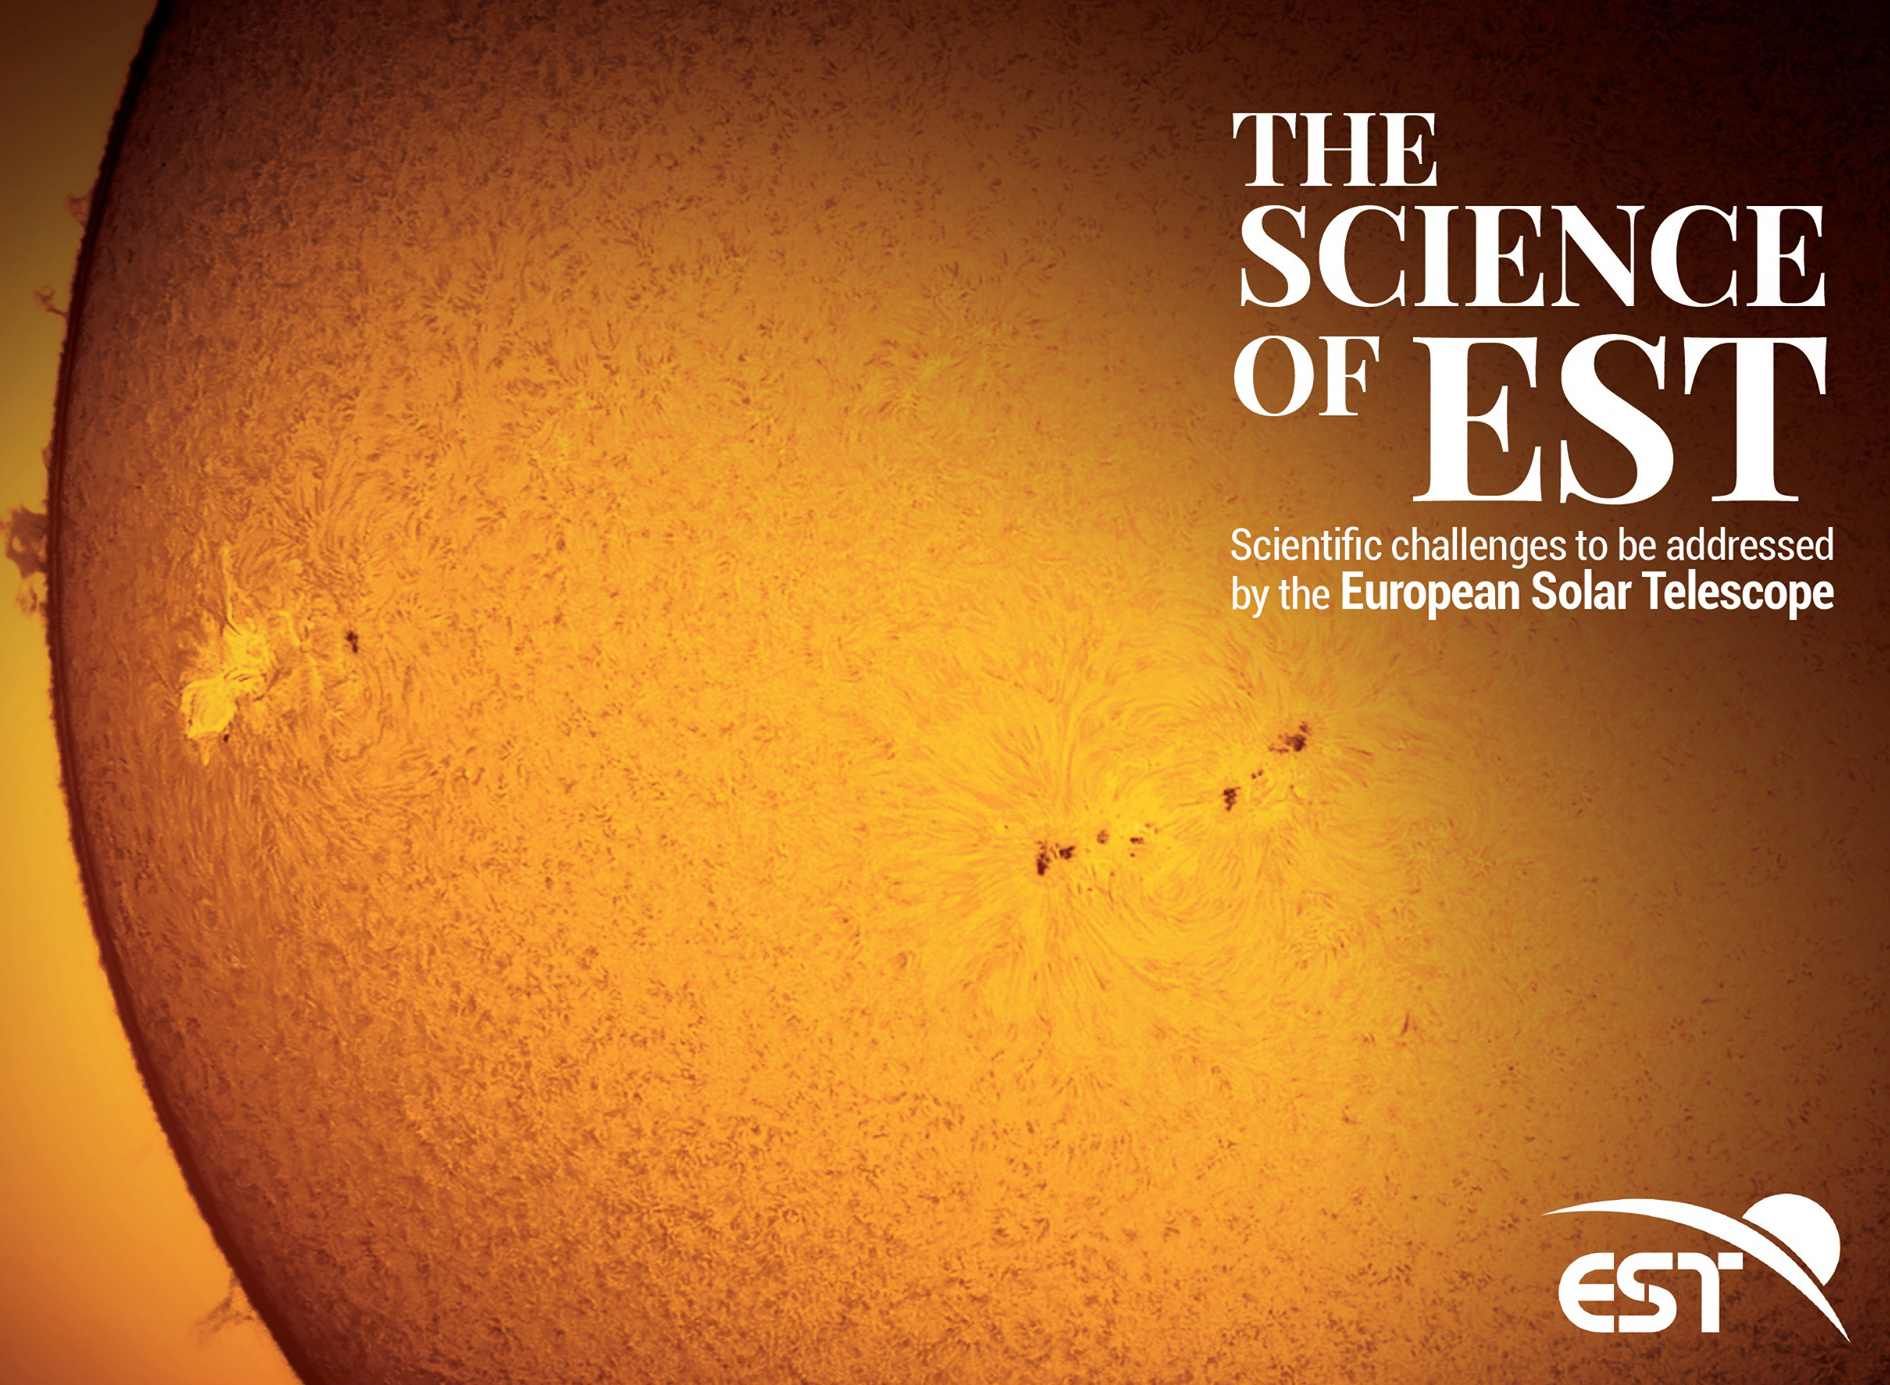 #TheScienceOfEST series is now available as a book!